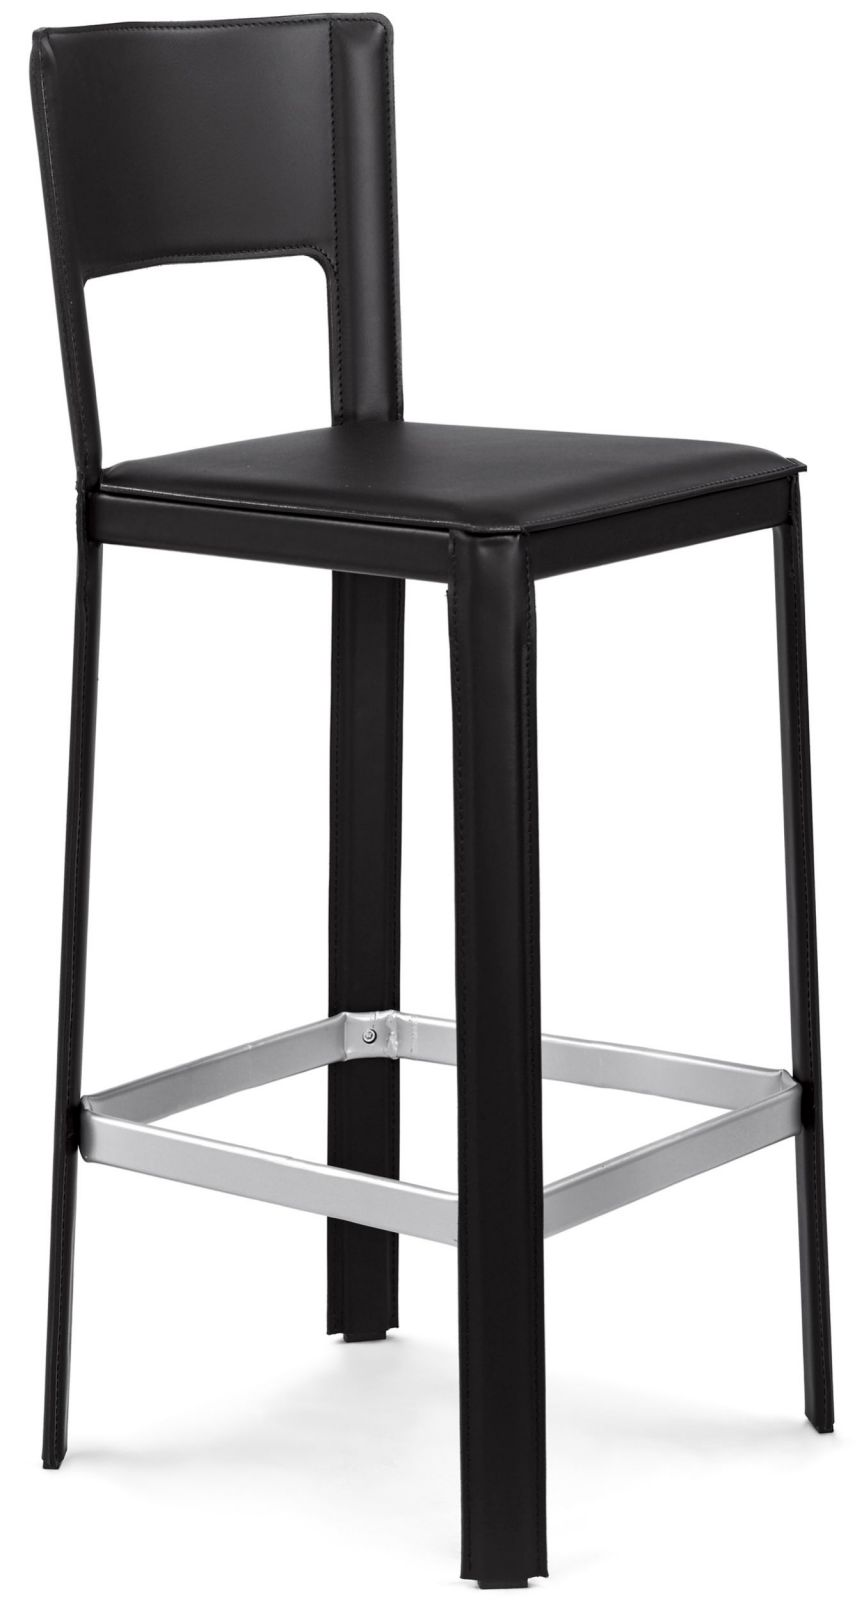 modern-bar-stools-Italian-furniture-large (15).jpg